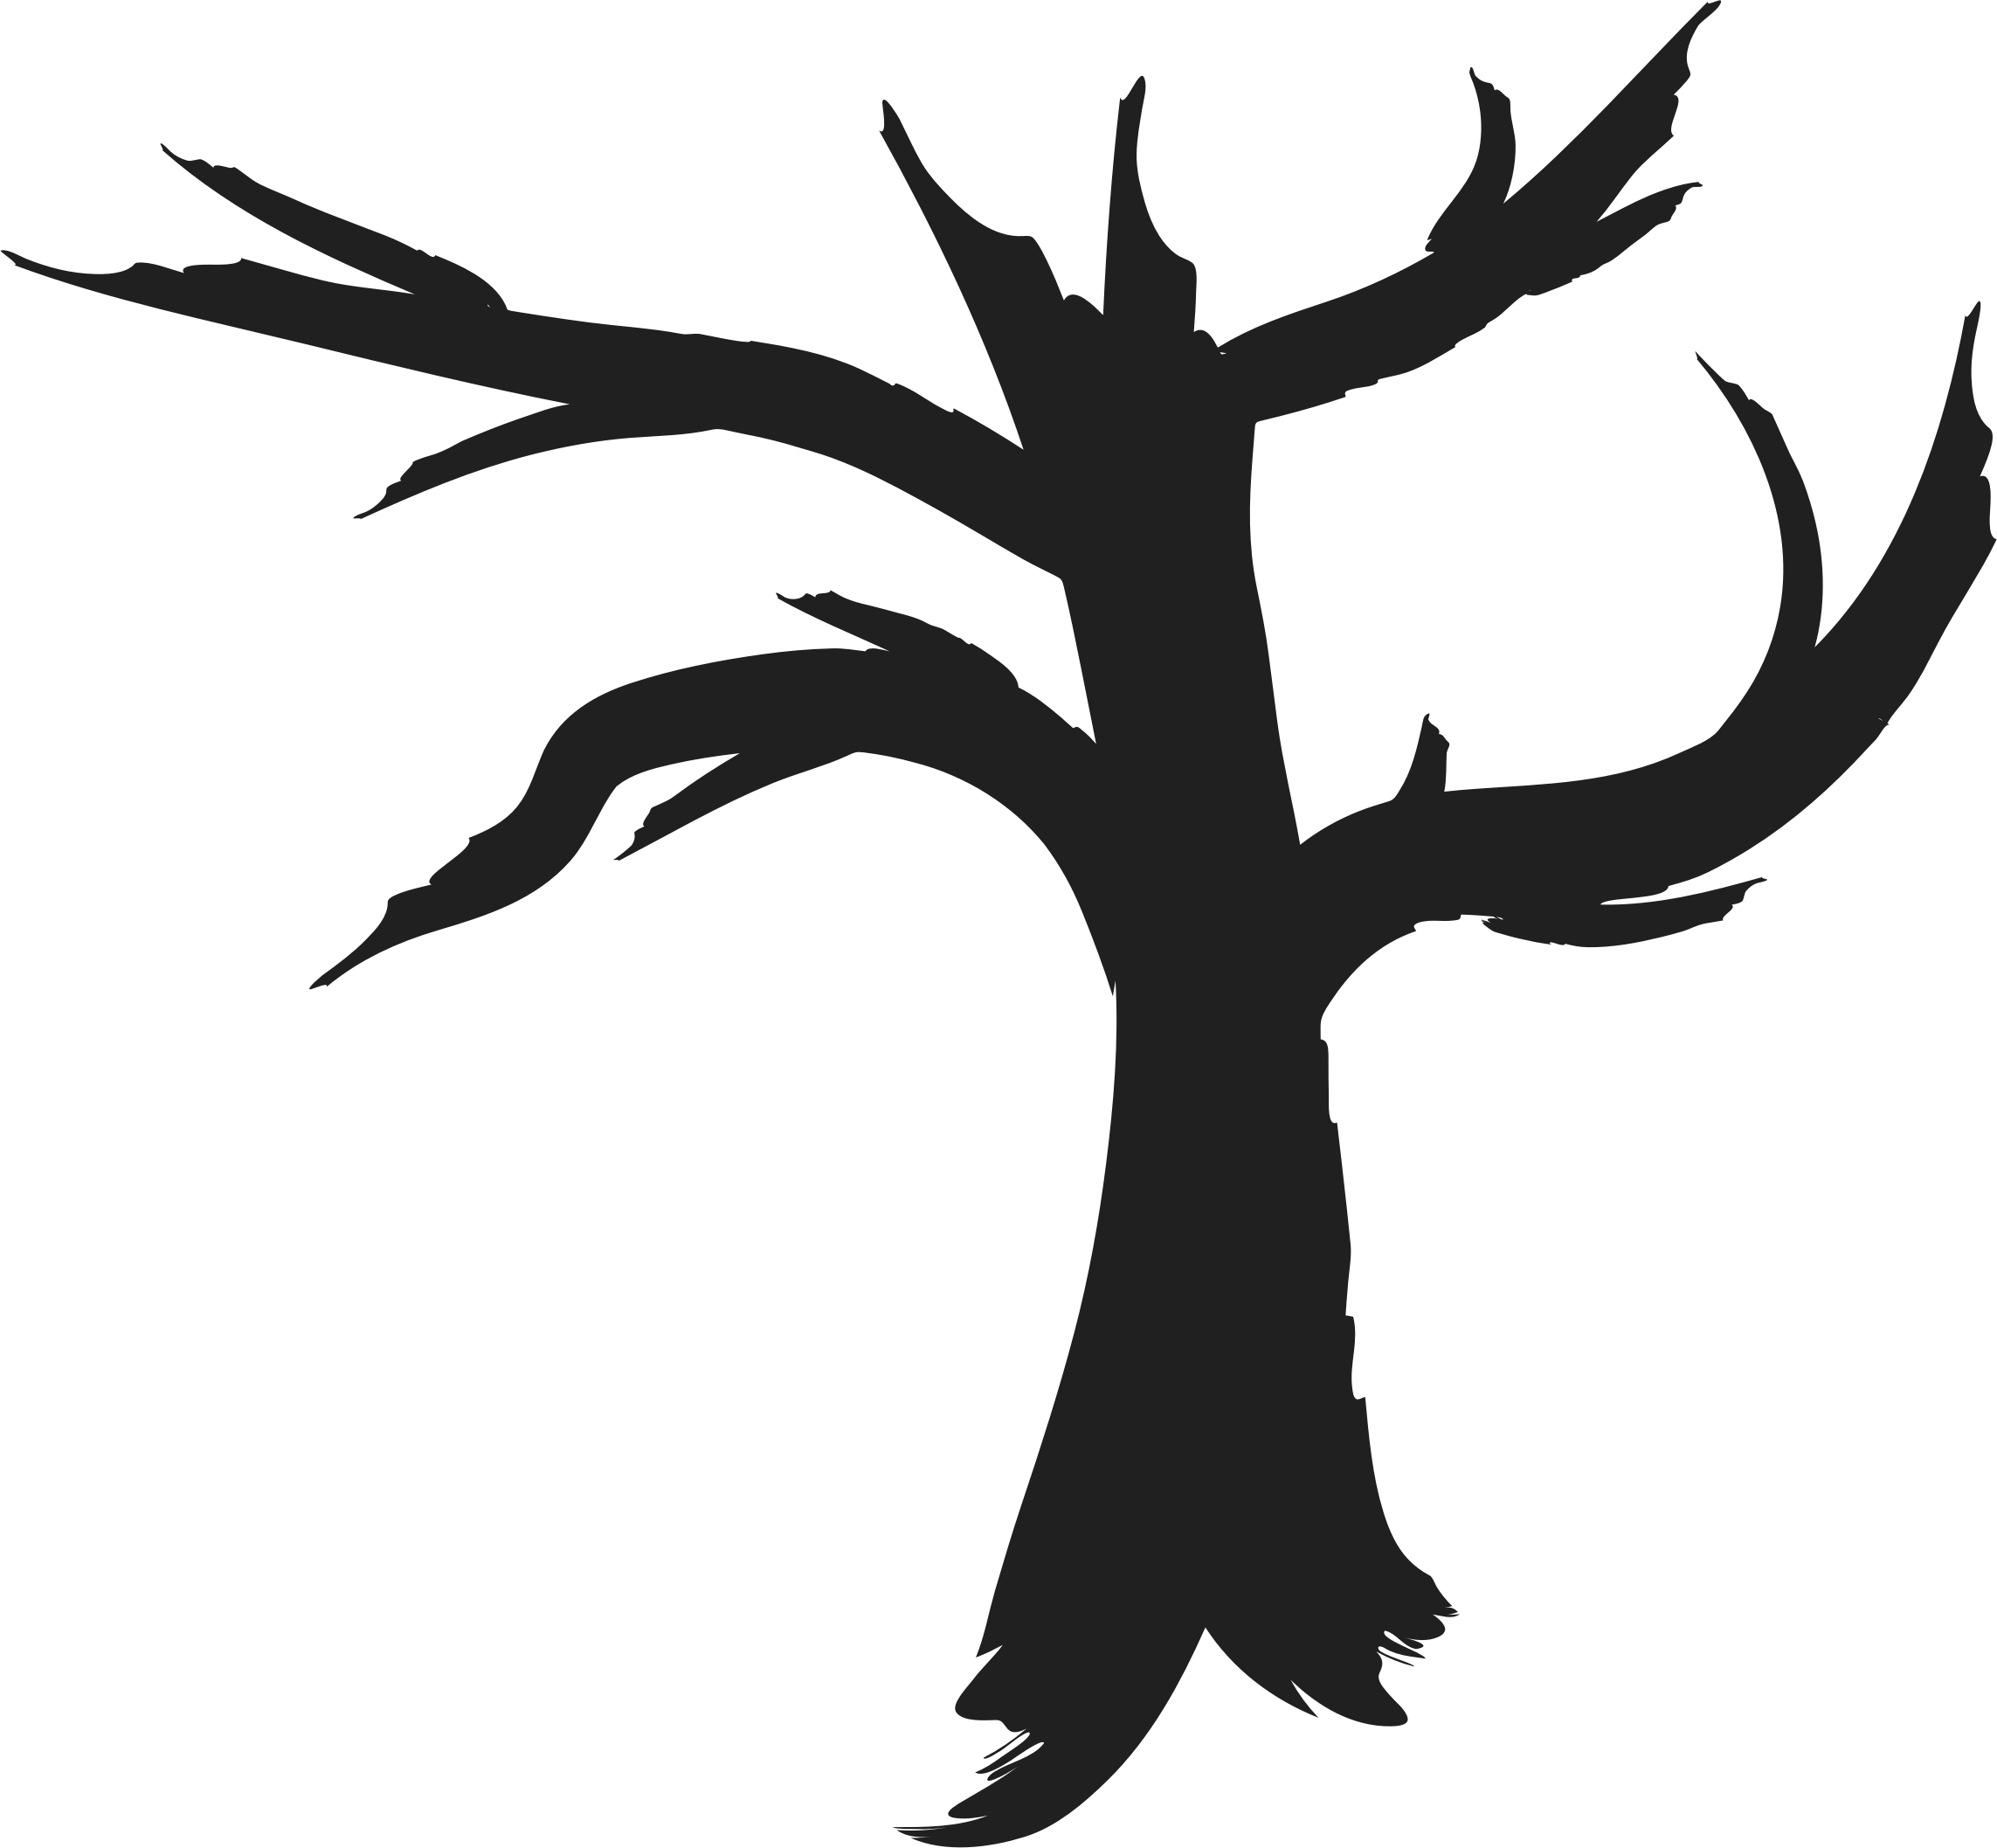 Dead tree clipart black and white banner library Tree Silhouette Black And White at GetDrawings.com   Free for ... banner library